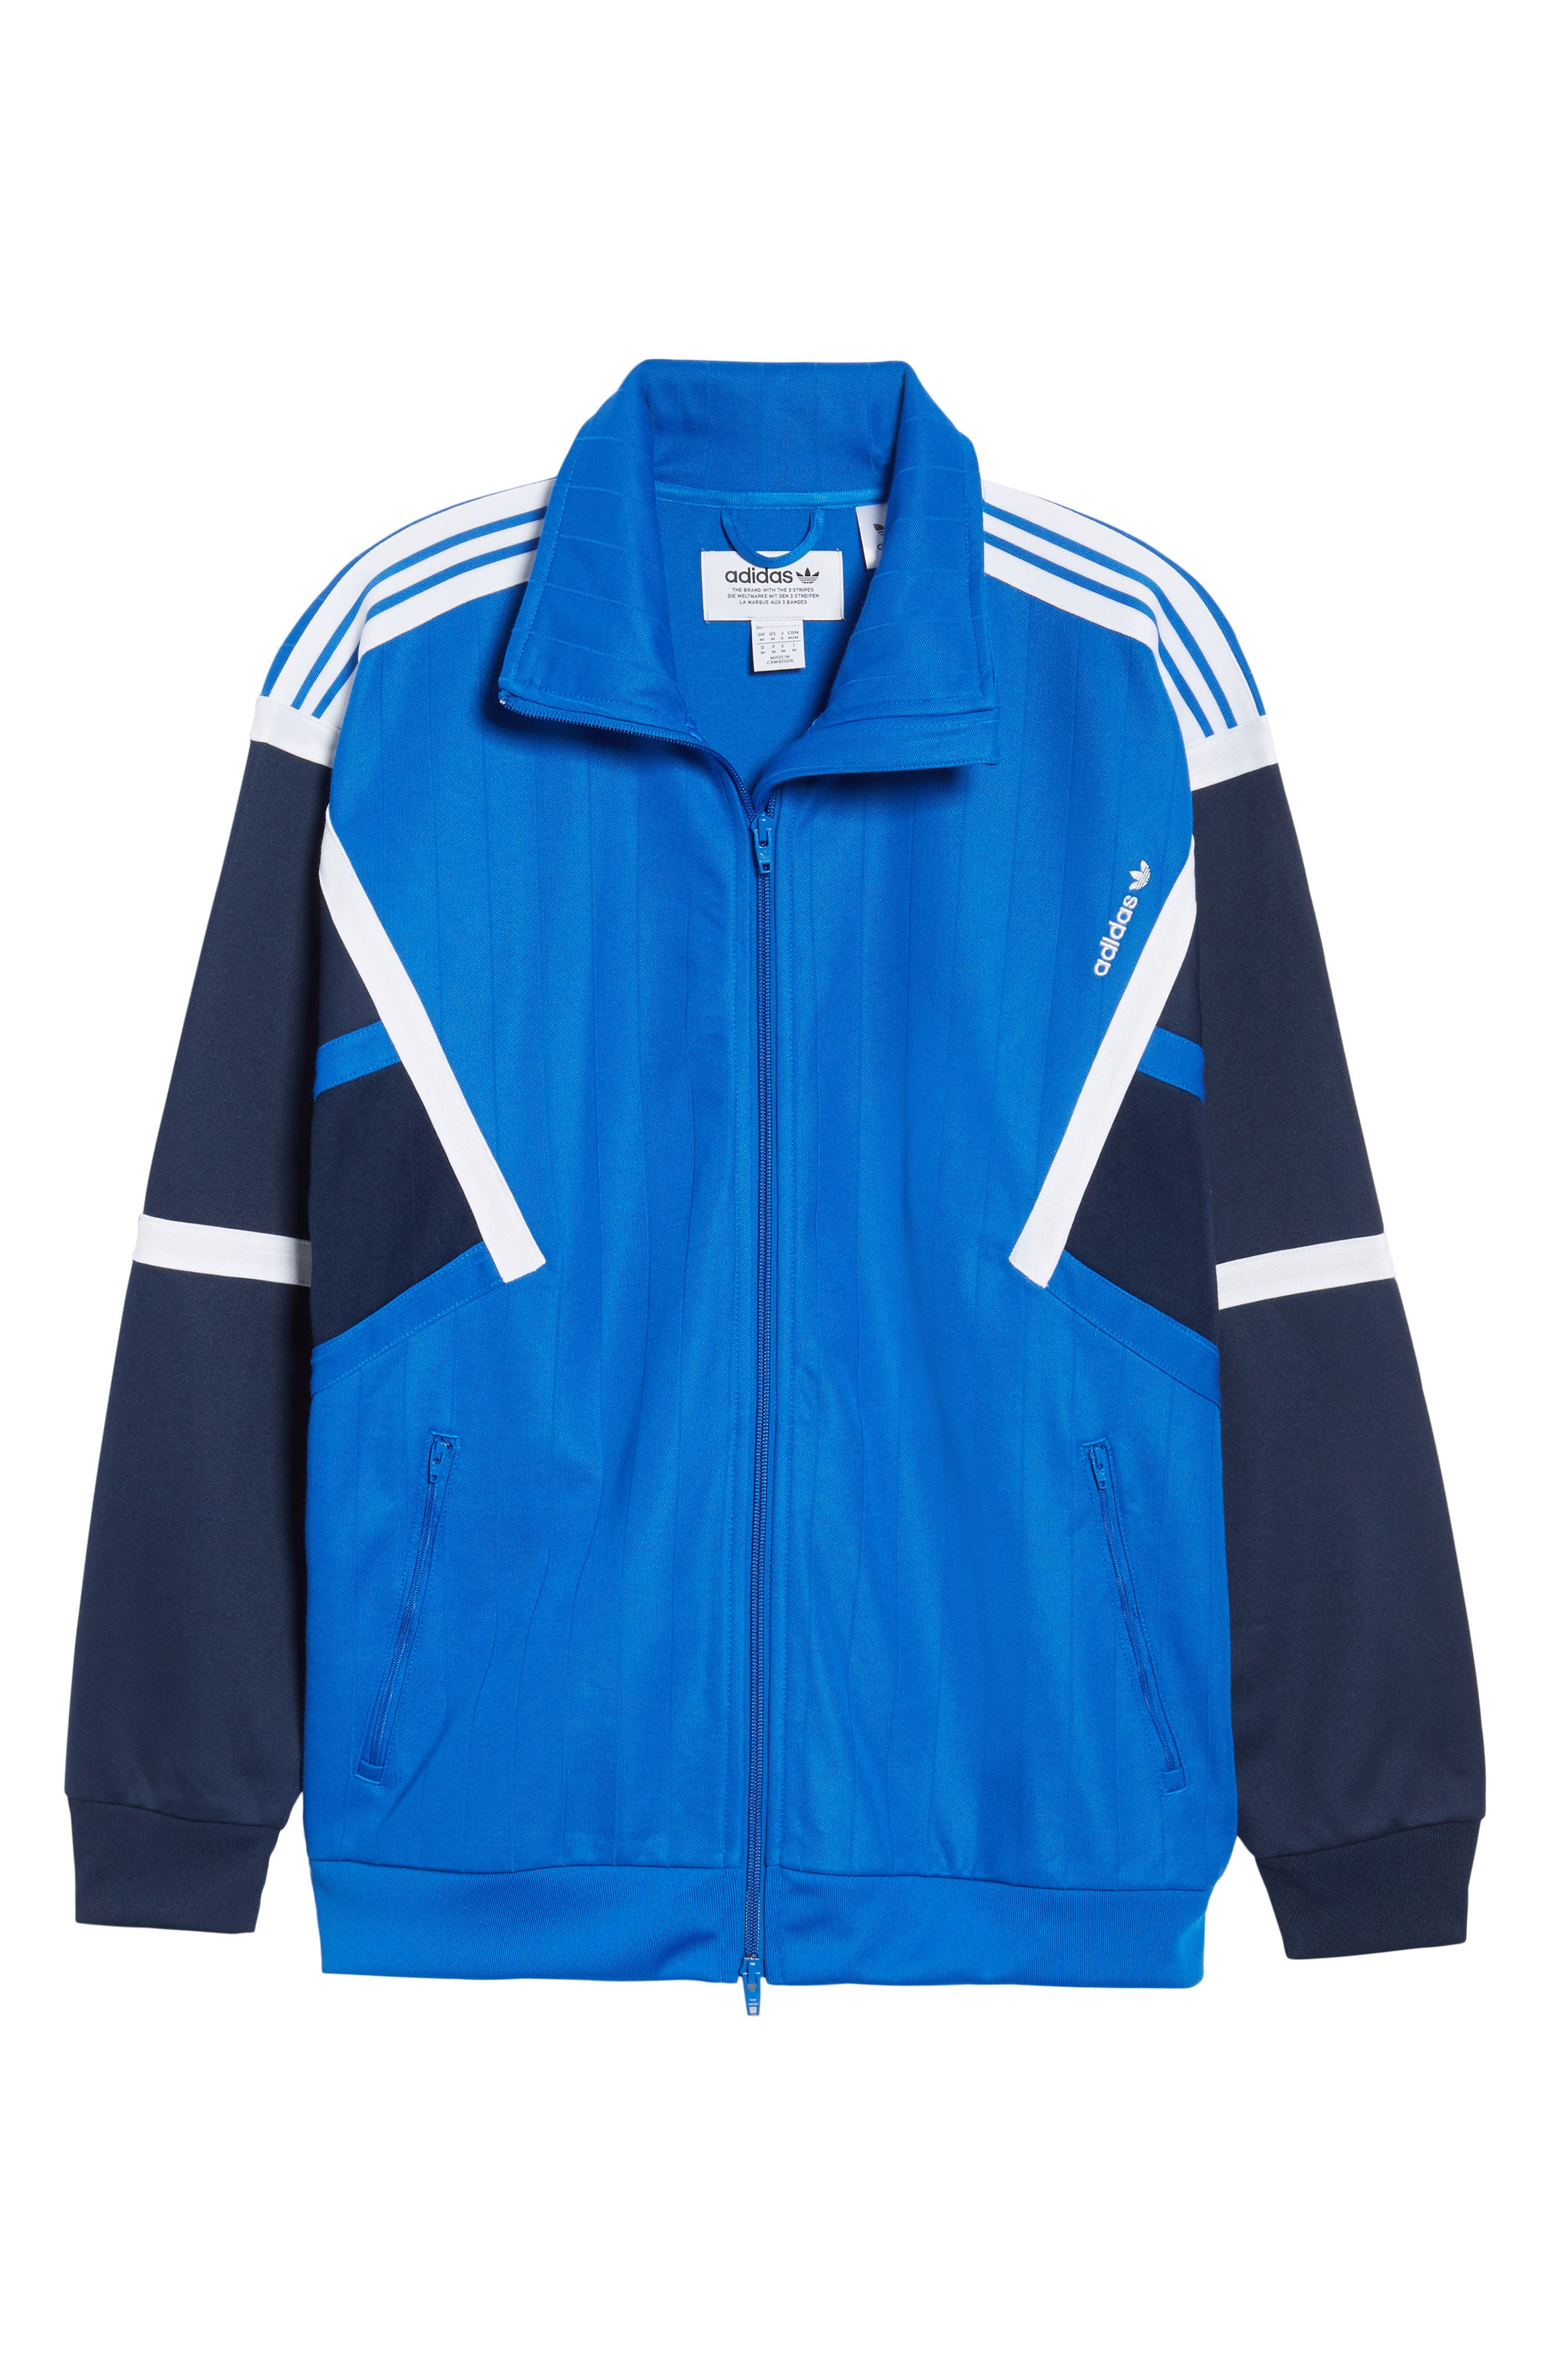 Water Resistant Training Track Jacket,                             Alternate thumbnail 6, color,                             Blue